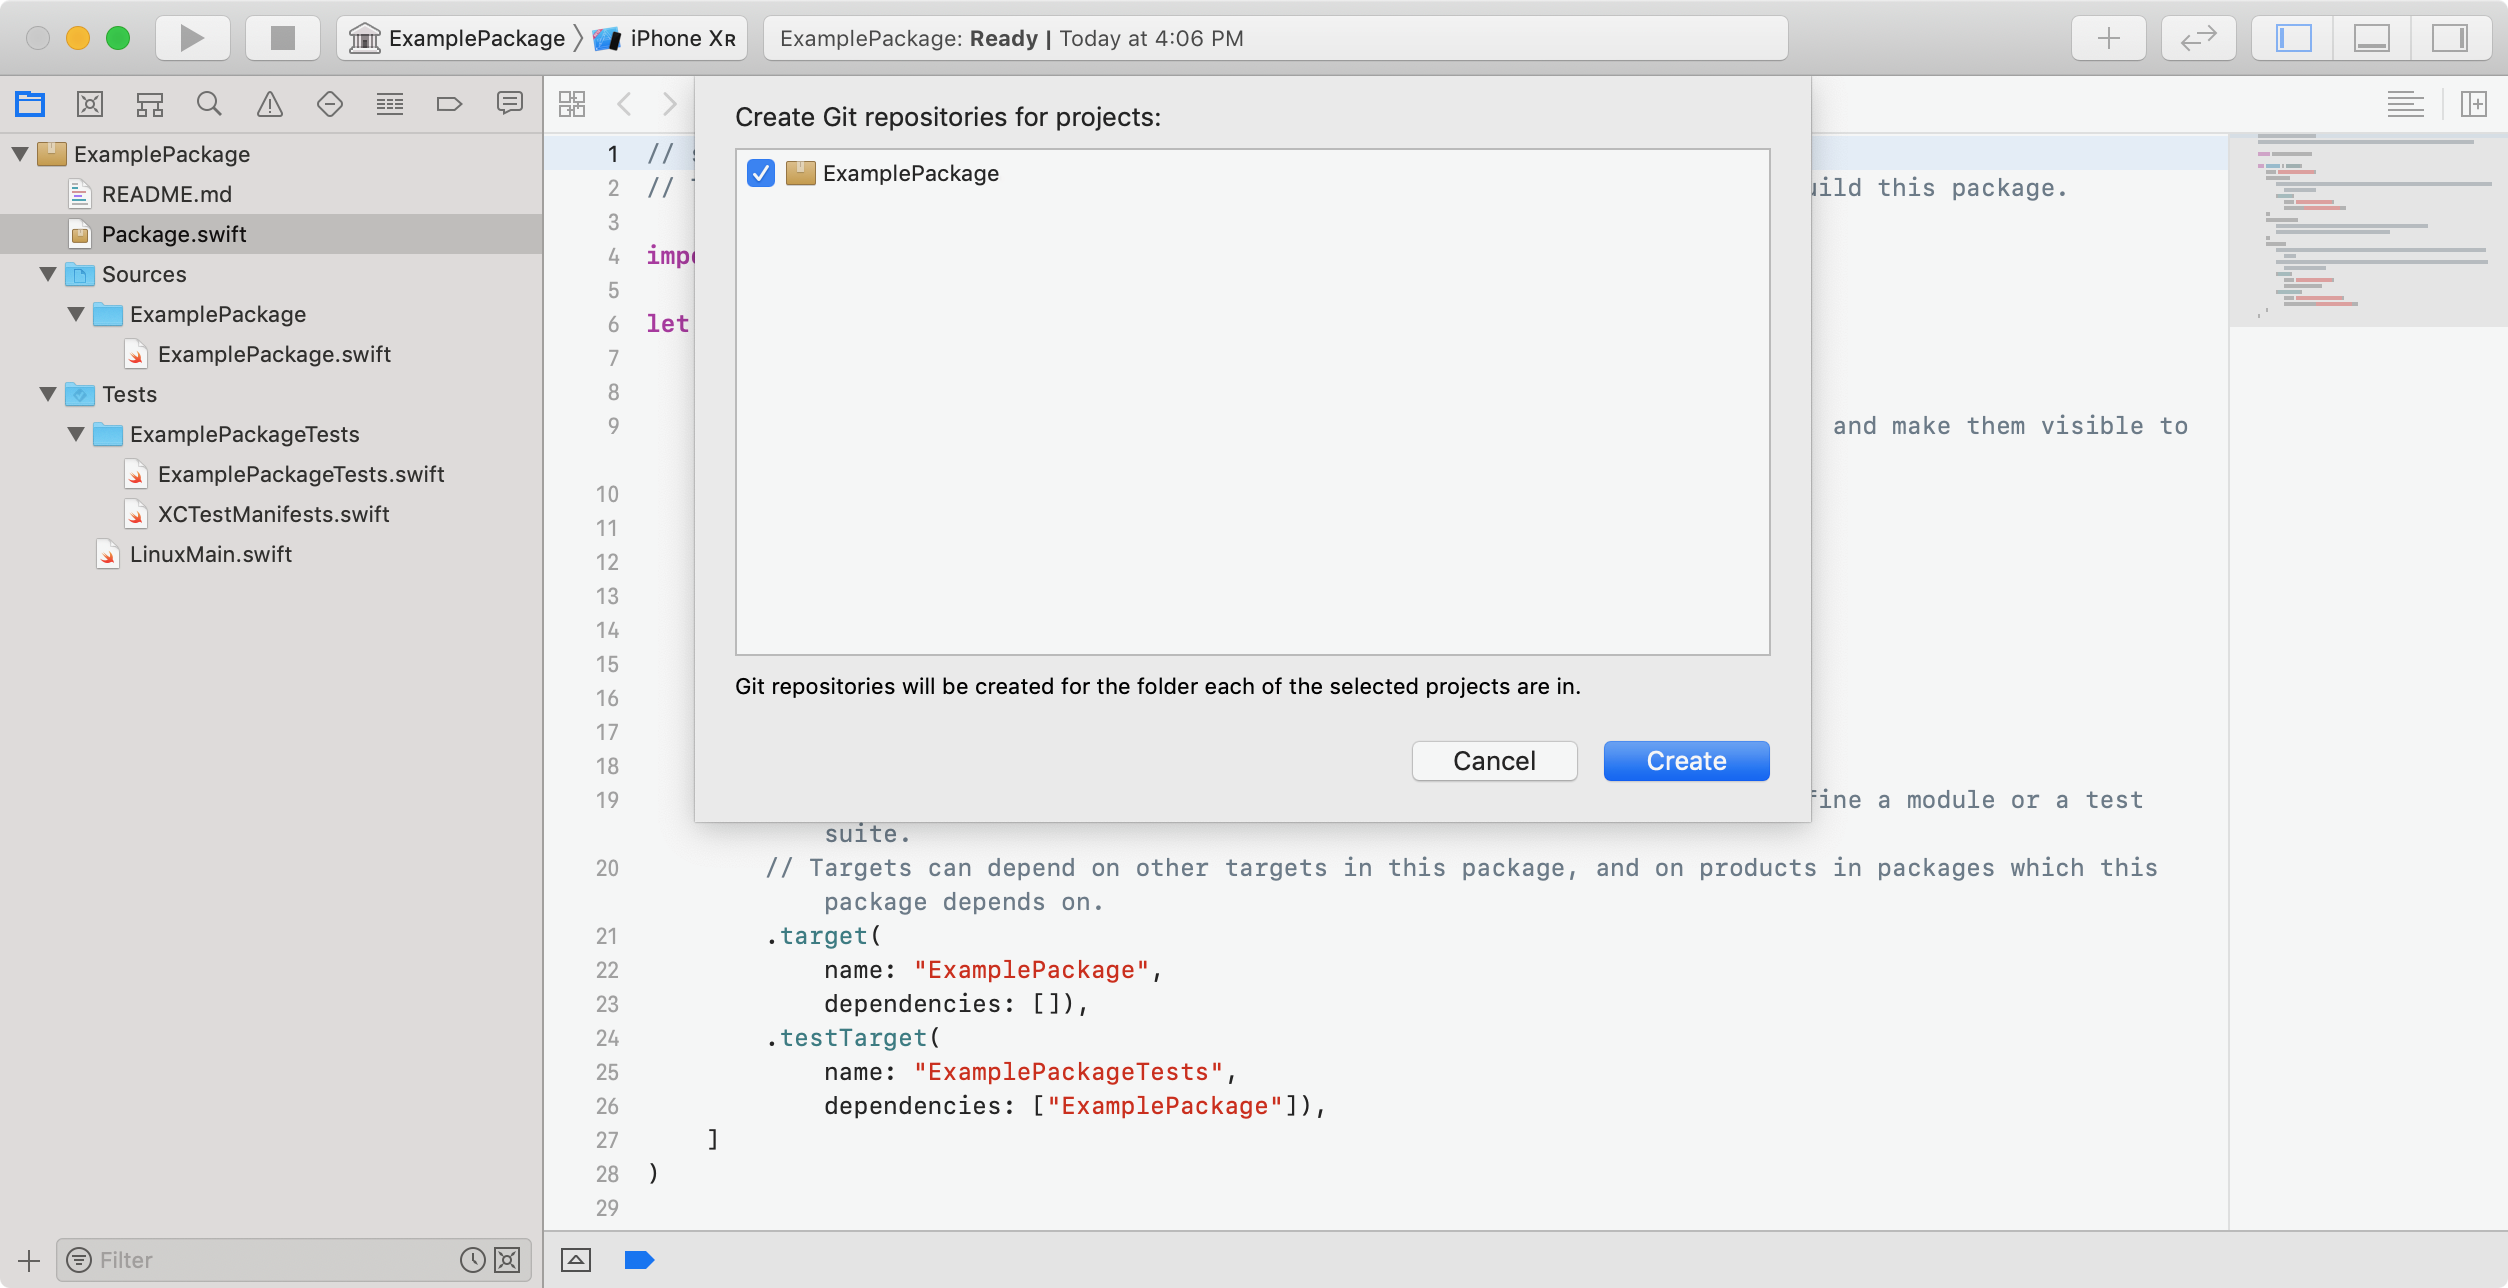 Screenshot showing the dialogue when following the directions to put a standalone Swift package under version control.